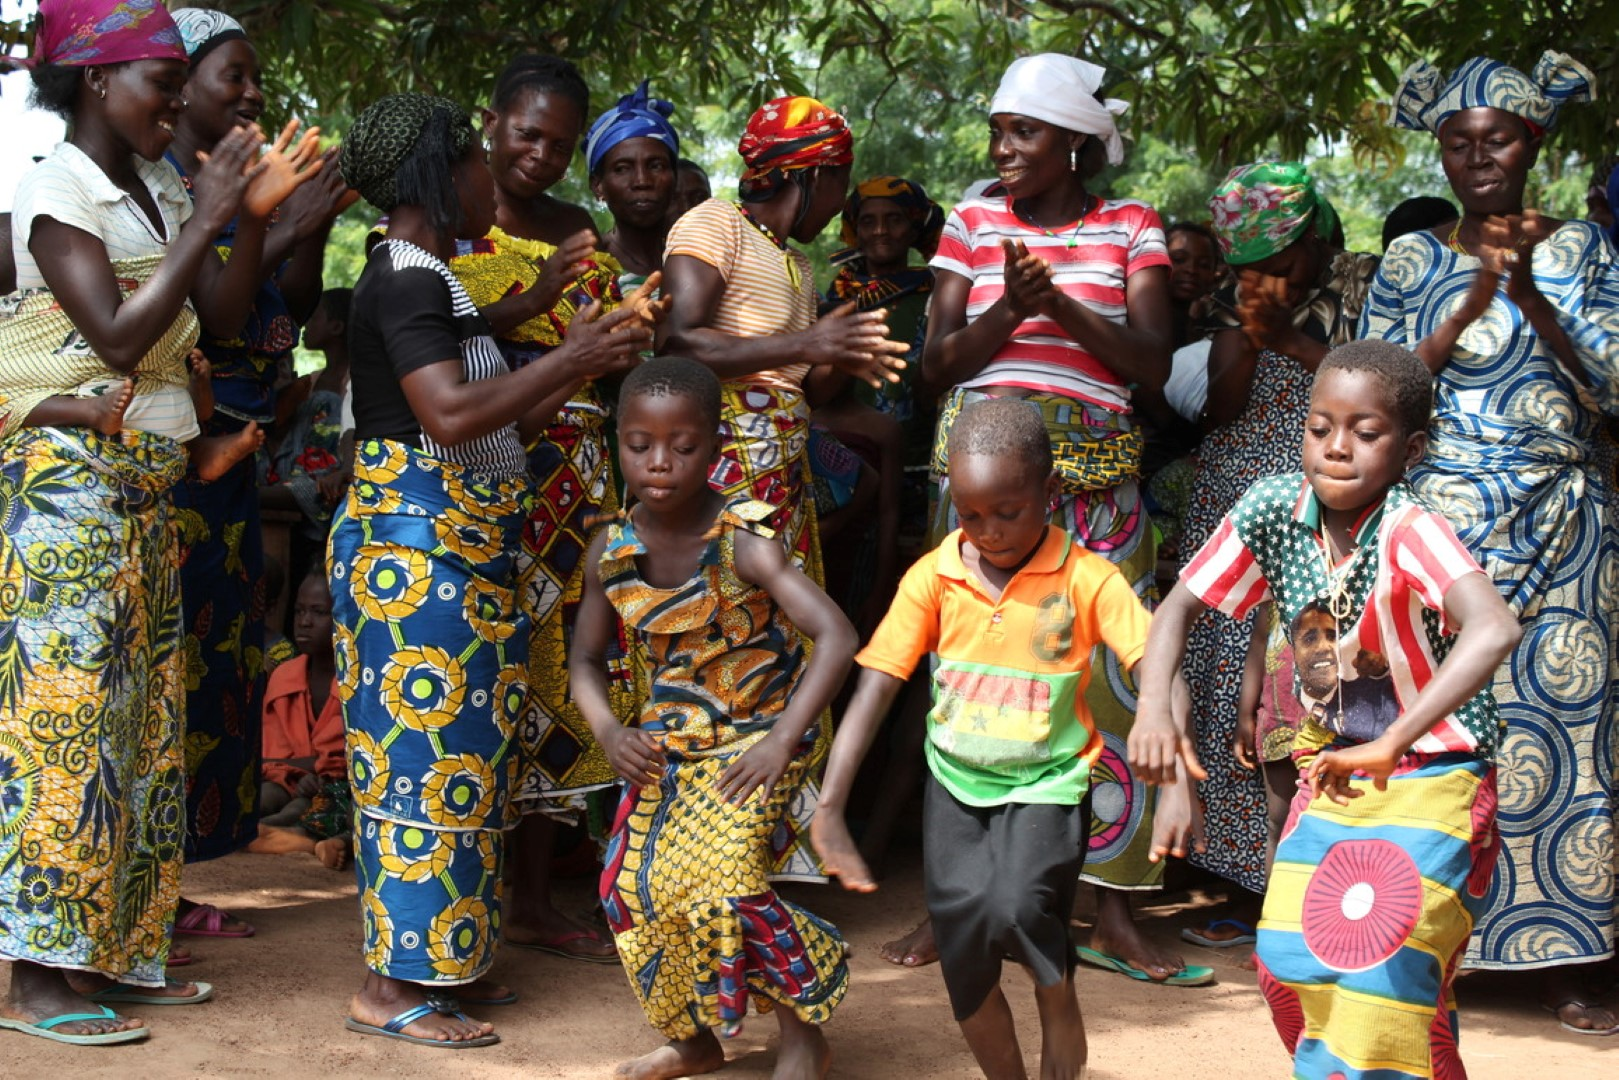 Traditionally dressed women and children dancing in Africa